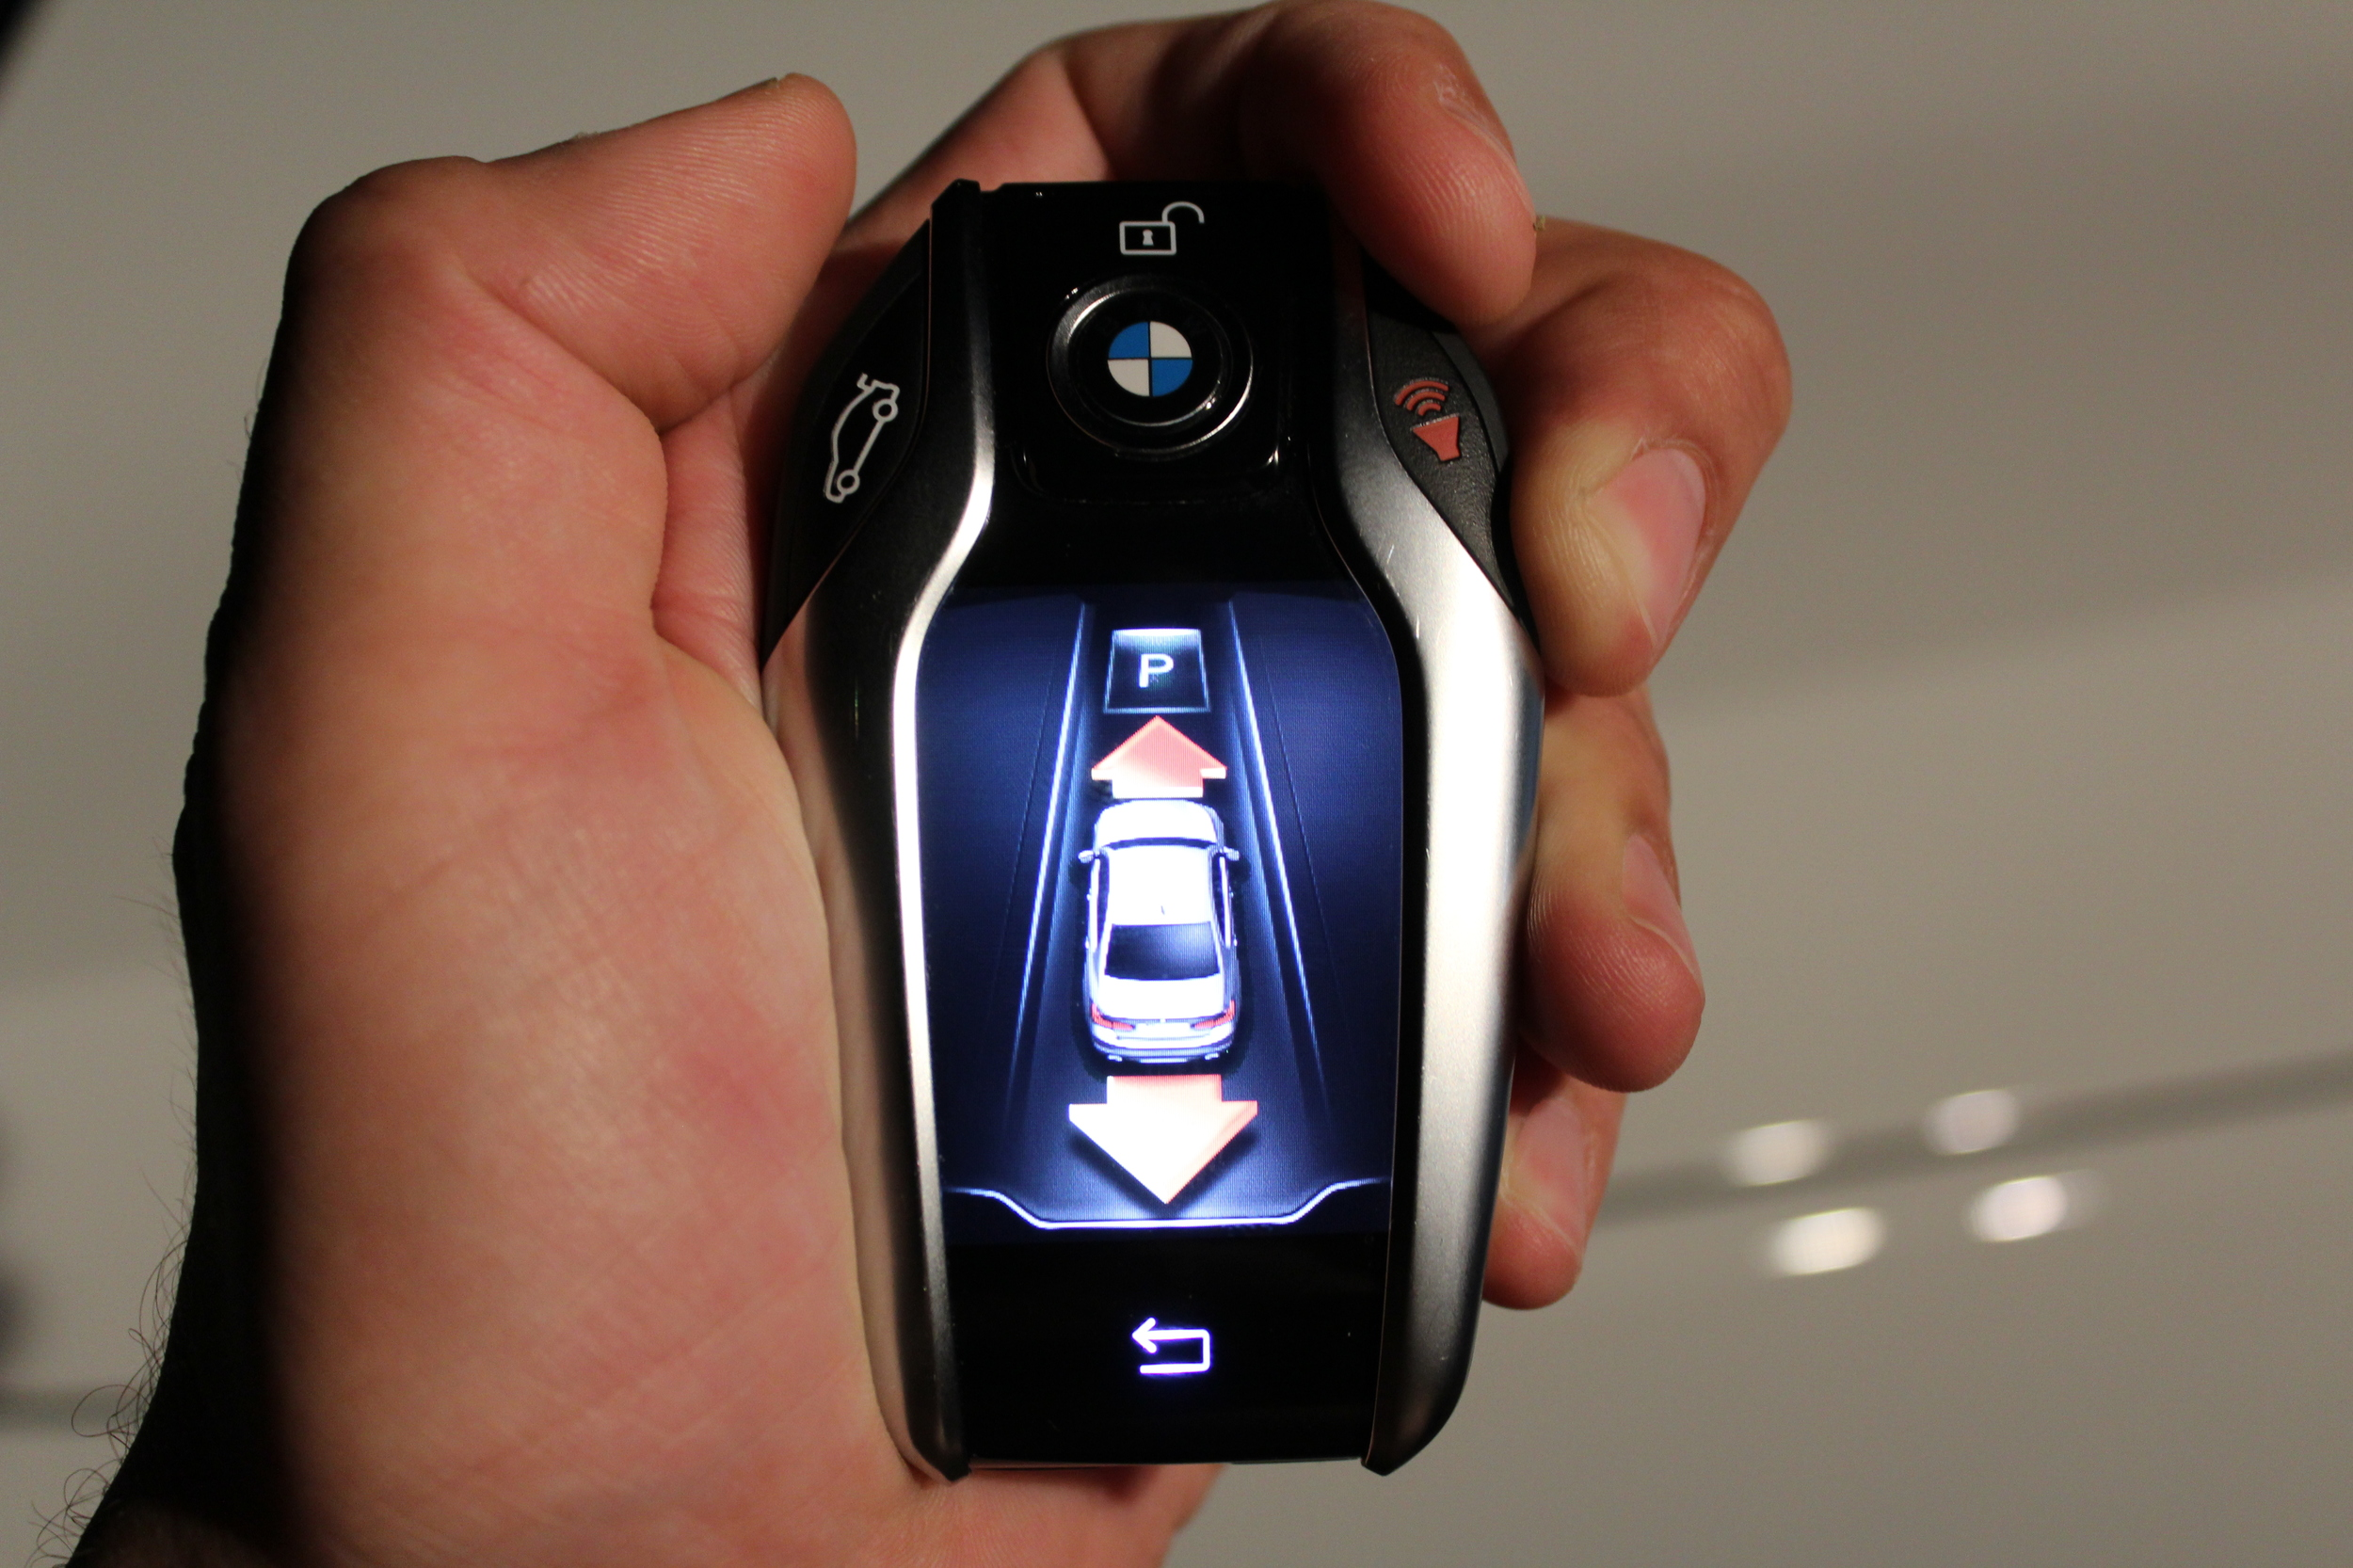 Bmw Display Key Technology Nobody Asked For Autoblog